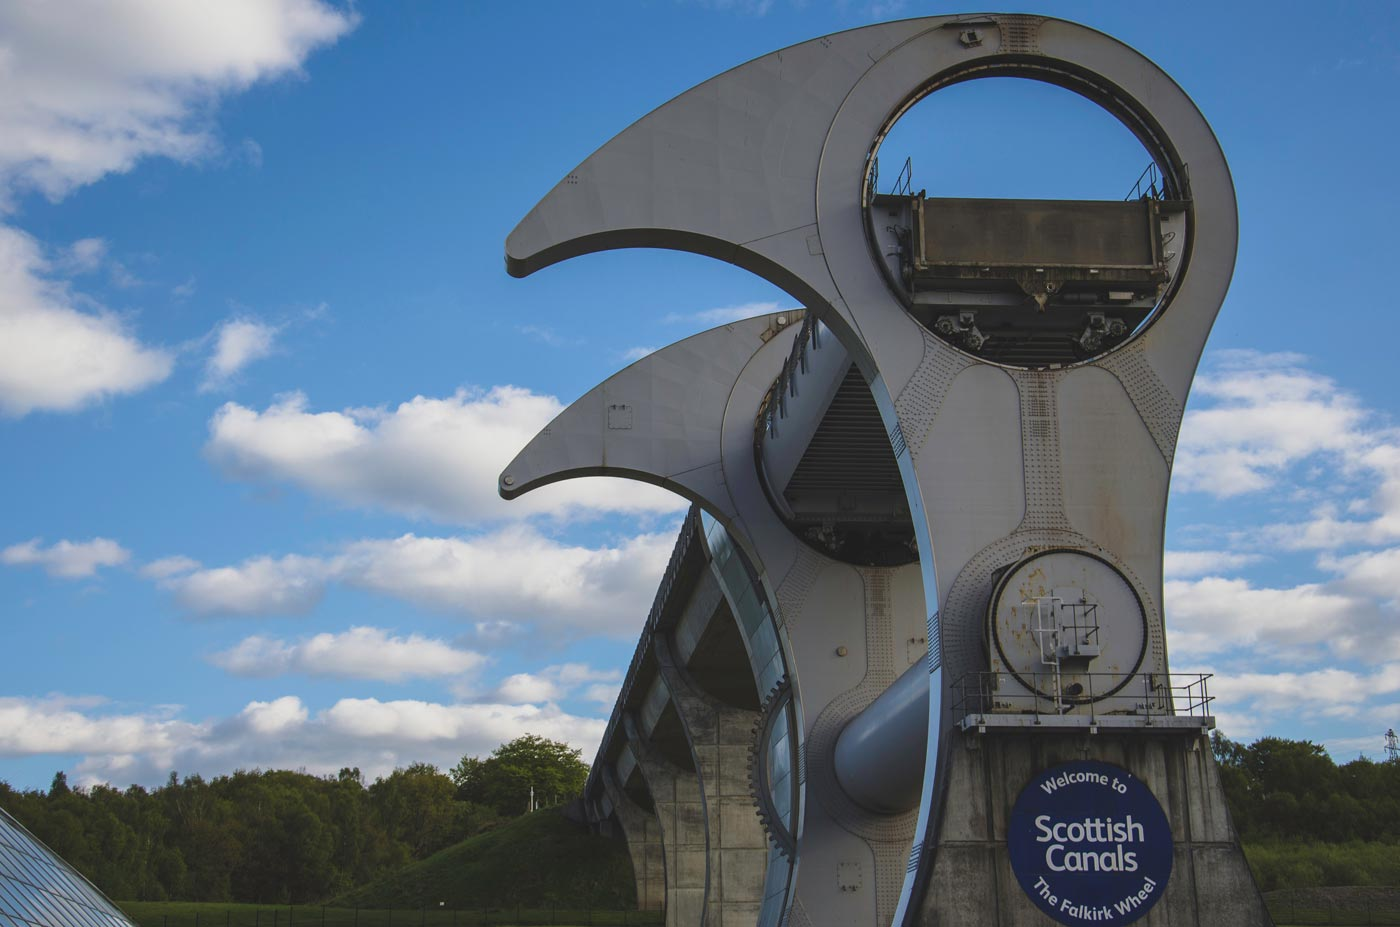 Falkirk Wheel, Glamping, Pods, Camping, Country, Woodland, short break, family accommodation, couples break, barbeque pit, Holiday Accommodation & Apartments, Falkirk, Linlithgow, Stirling, Edinburgh, Glasgow Scotland